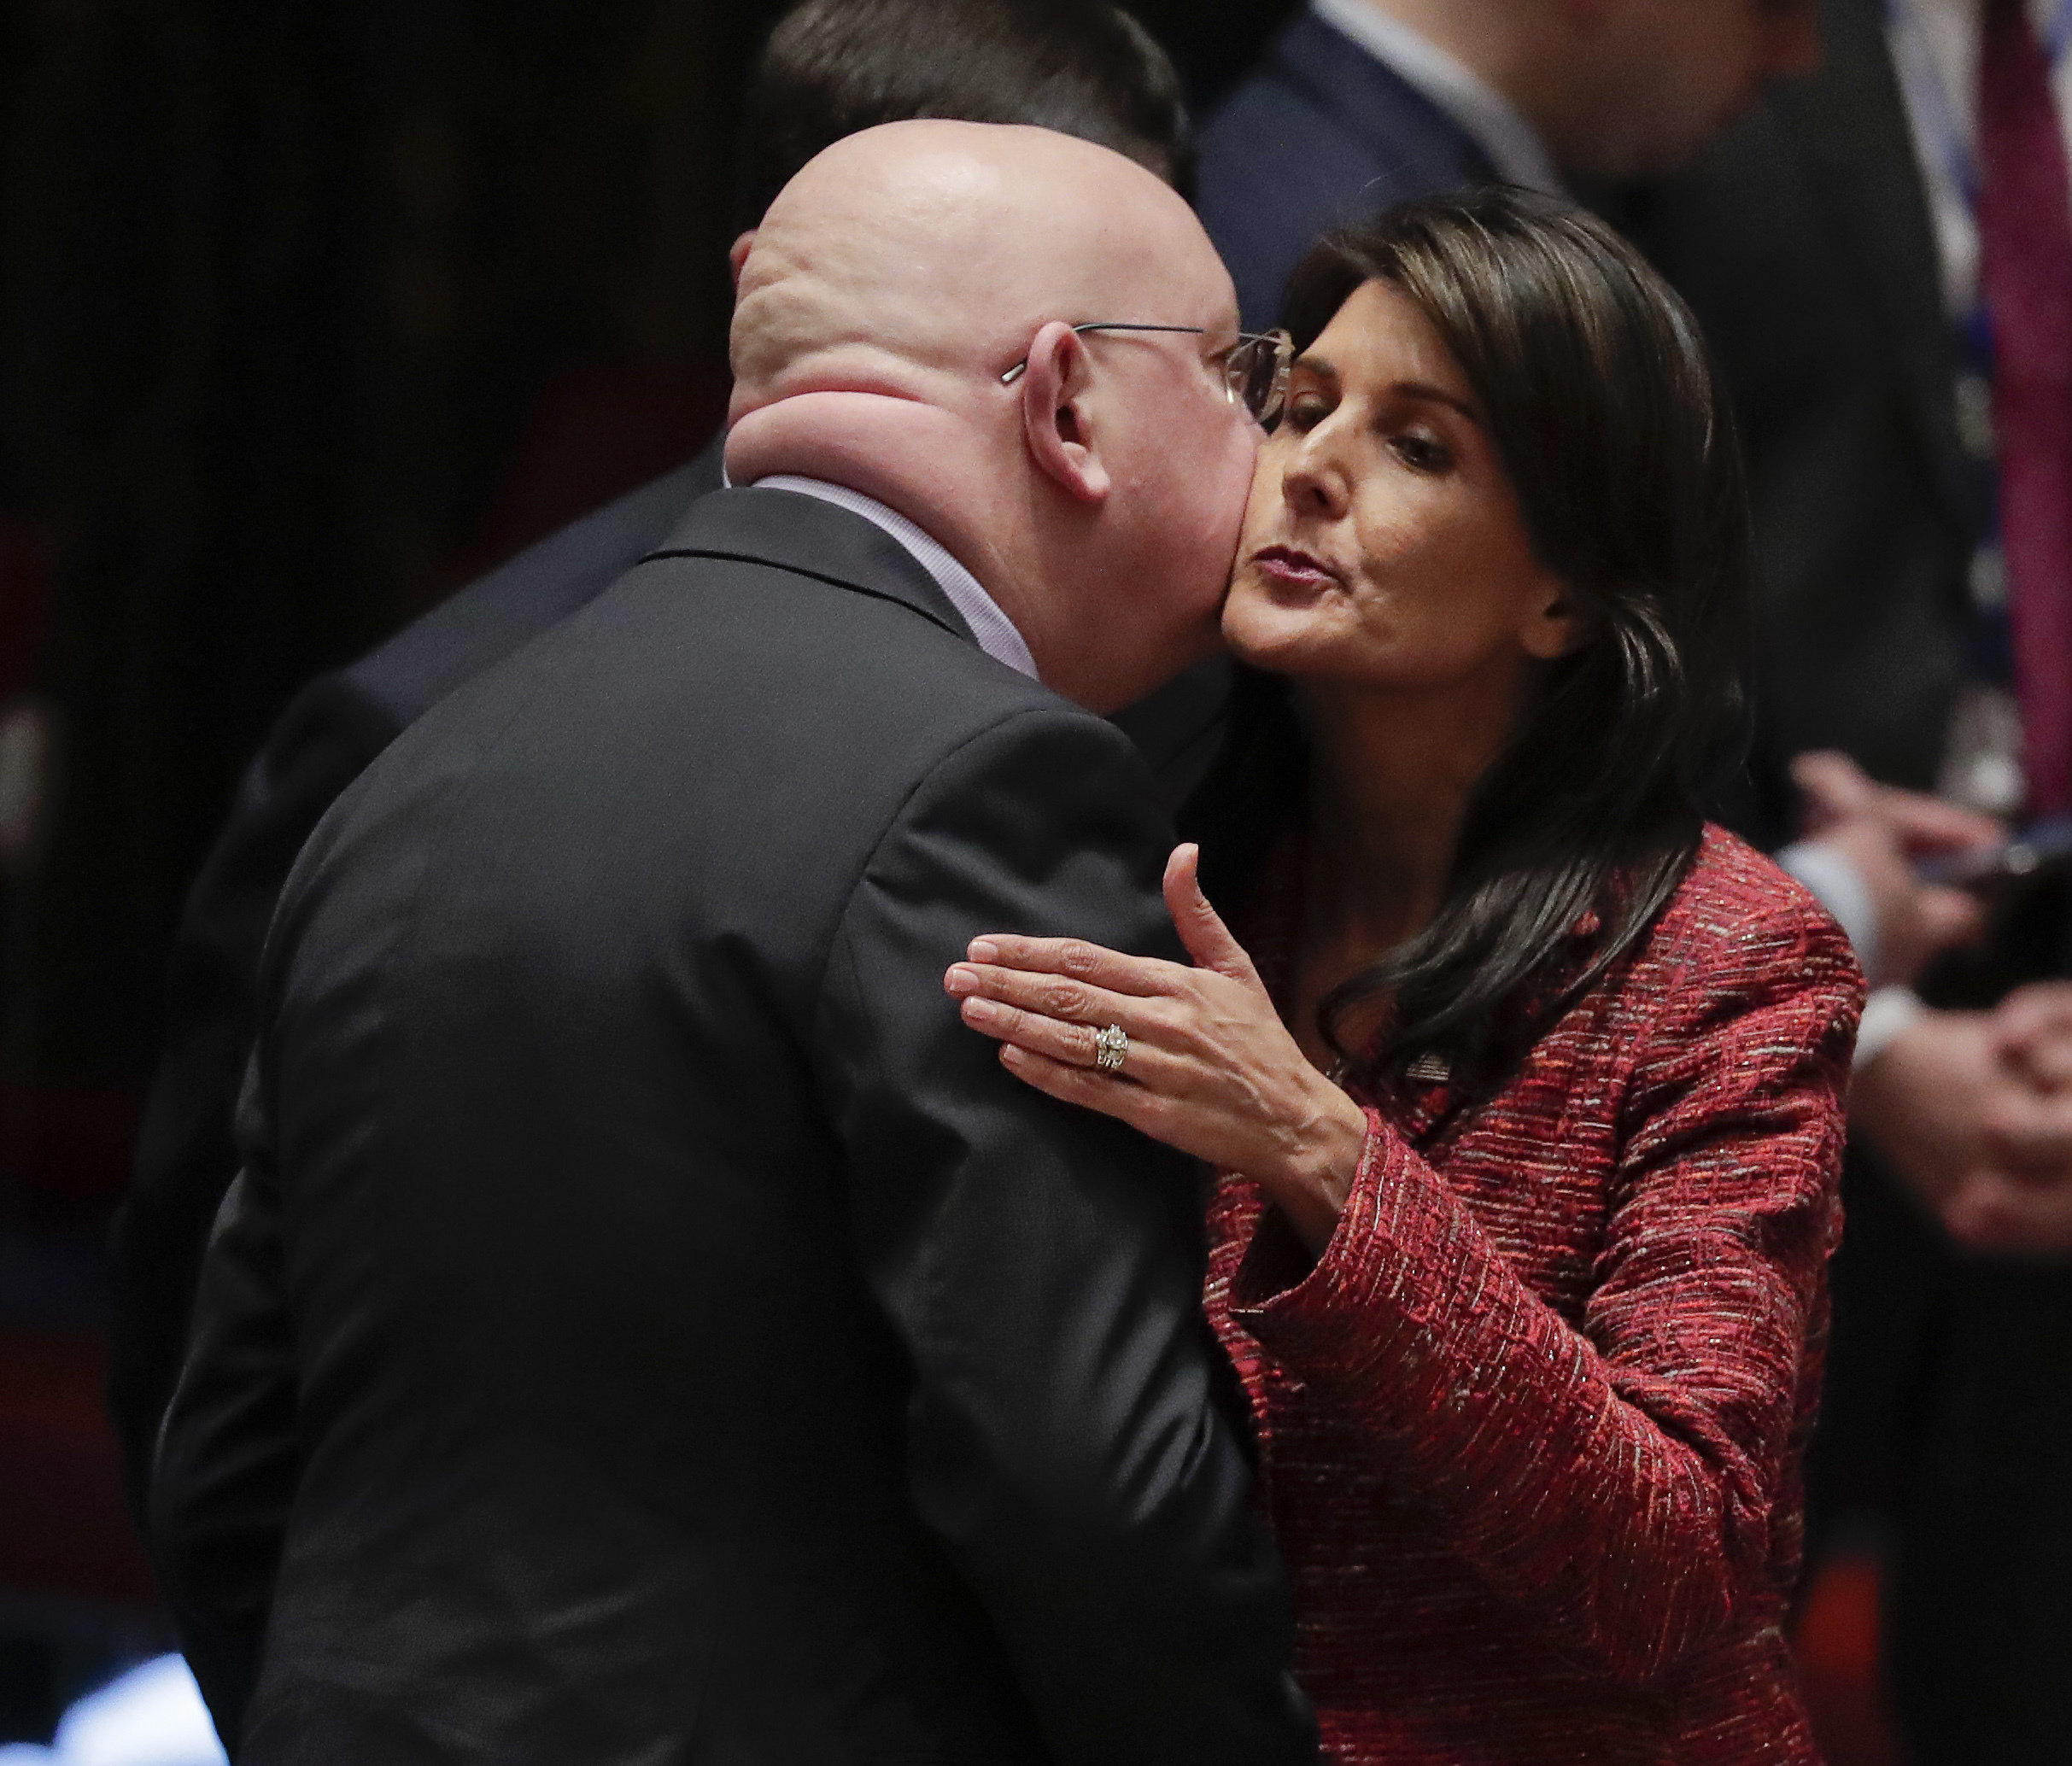 Russian Ambassador to the United Nations Vasily Nebenzya, left, and United States Ambassador to the U.N. Nikki Haley exchange greetings before a Security Council meeting, Tuesday, April 10, 2018, at U.N. headquarters